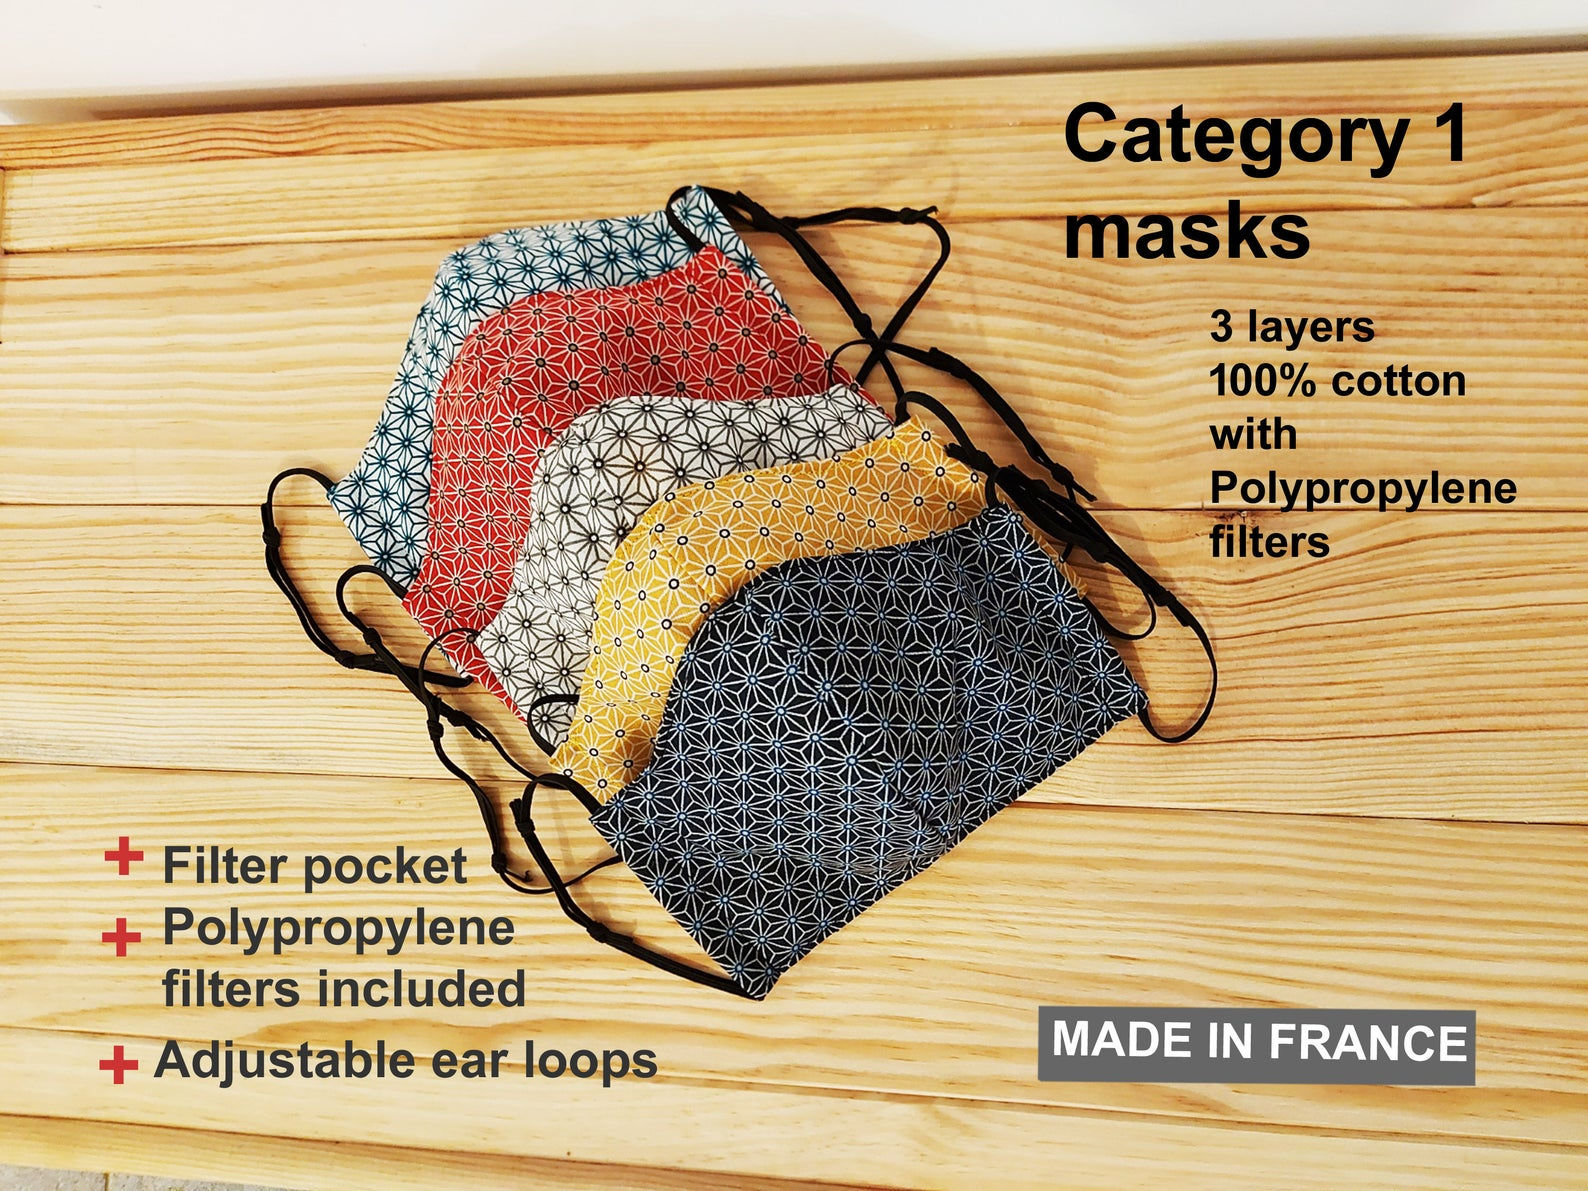 https://www.etsy.com/fr/listing/865799550/afnor-cat-1-masque-facial-filtres-en?ga_order=most_relevant&ga_search_type=all&ga_view_type=gallery&ga_search_query=masques+afnor+lavable&ref=sr_gallery-1-1&from_market_listing_grid_organic=1&bes=1&col=1